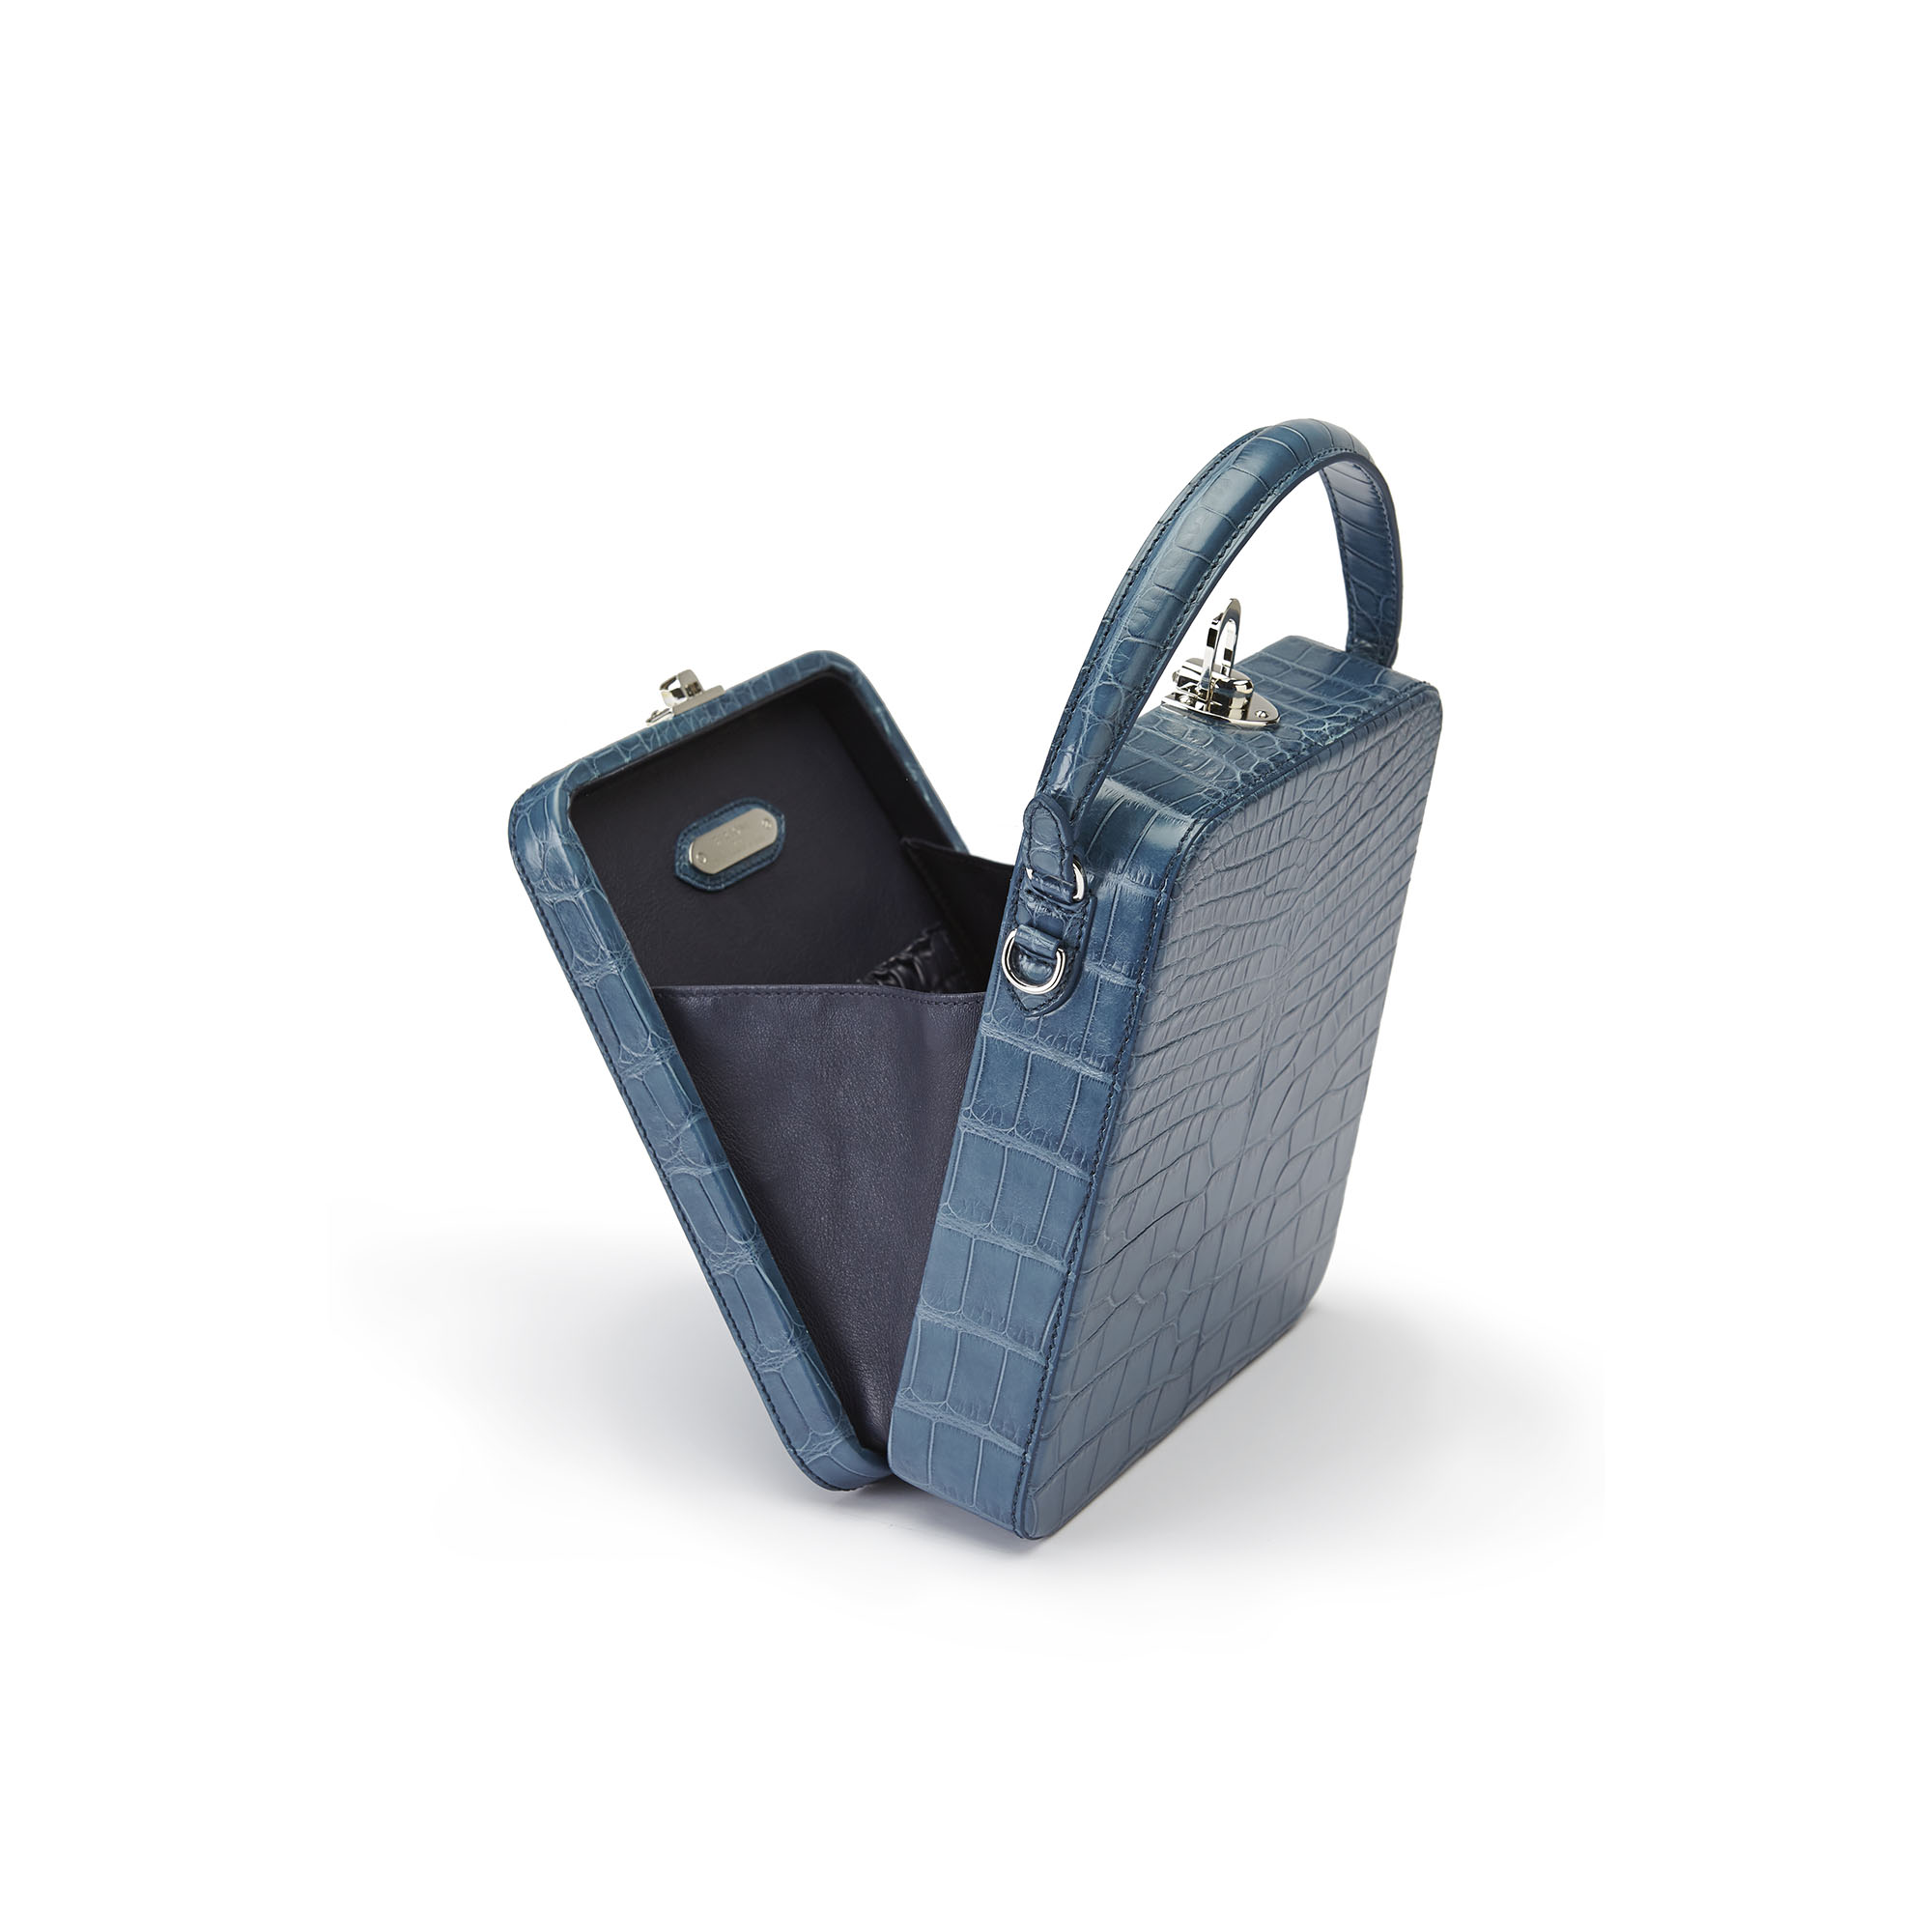 The blue alligator denim Tall Bertoncina bag by Bertoni 1949 04